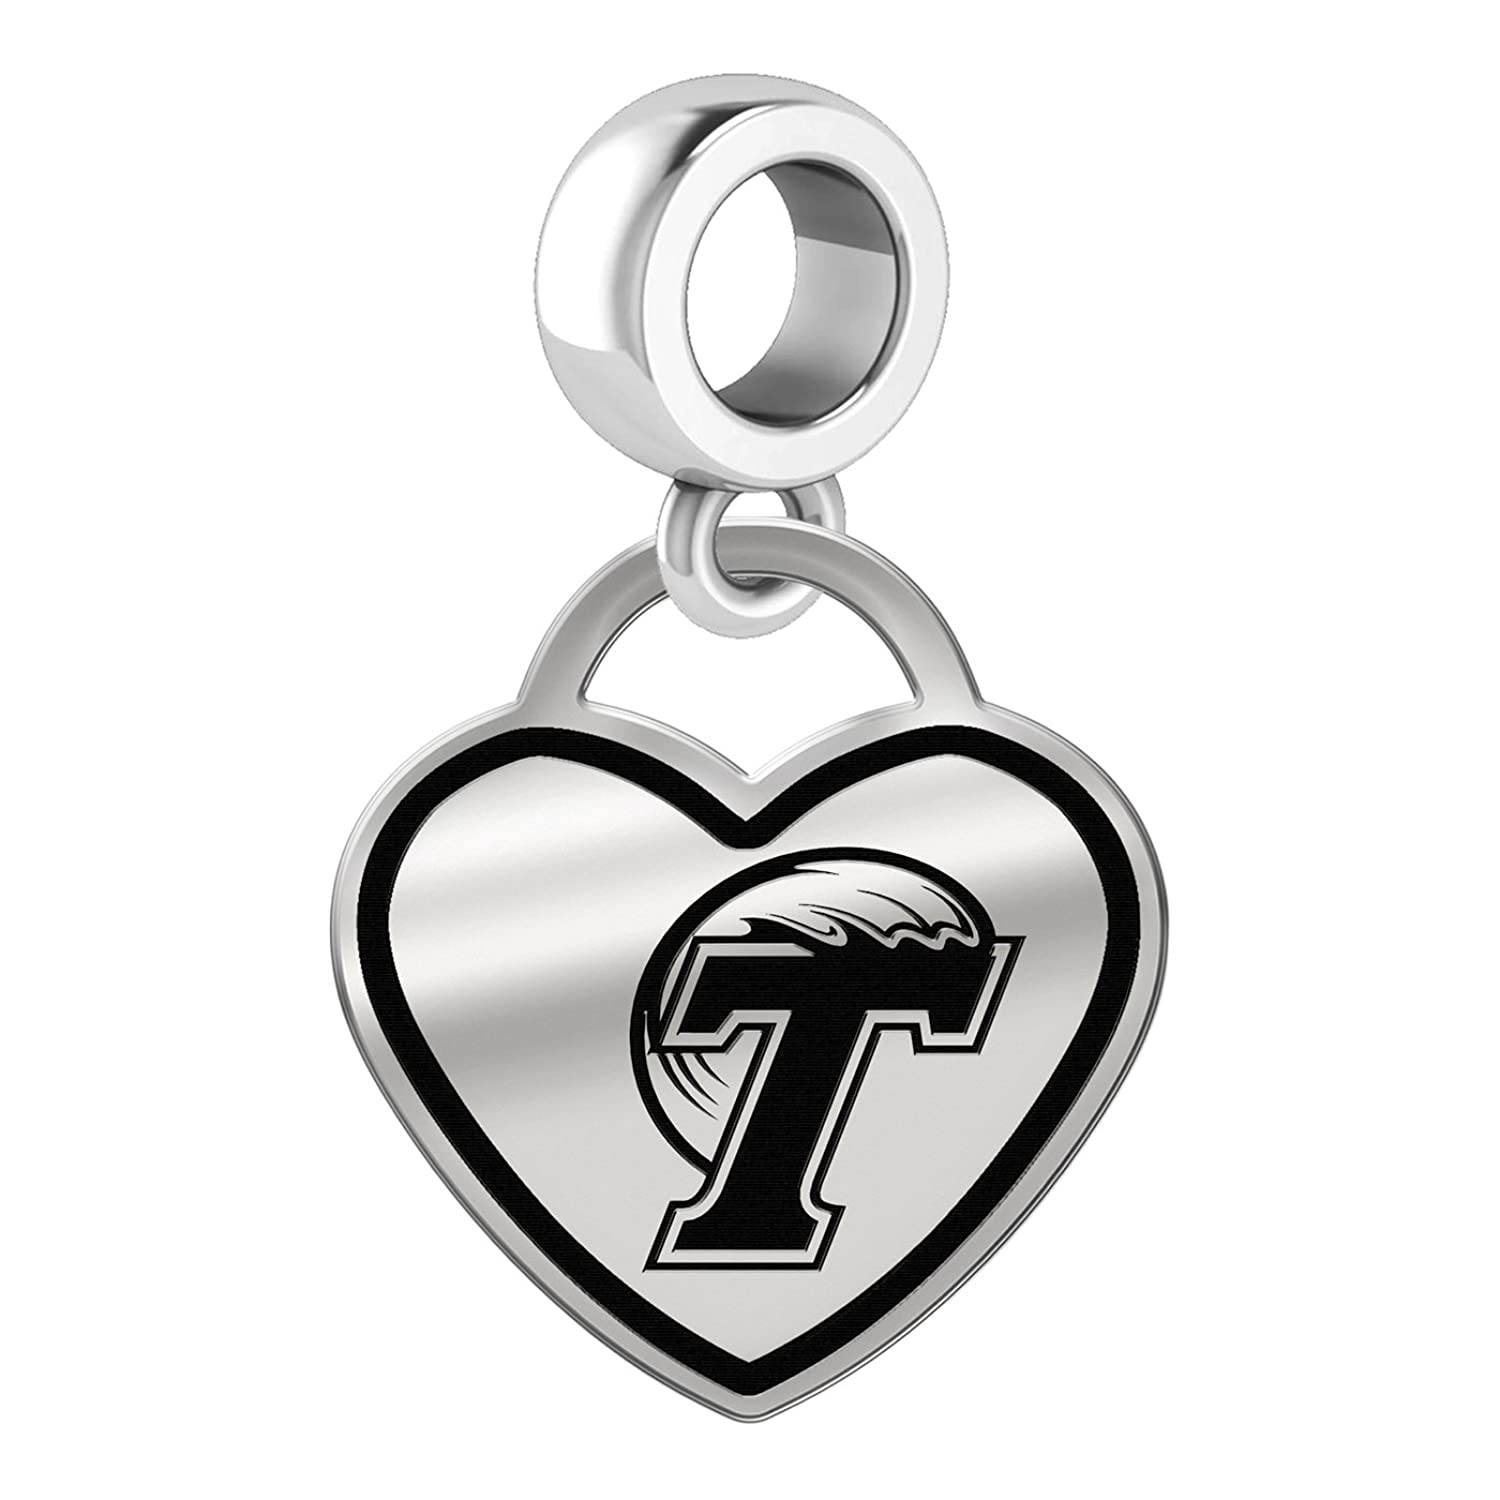 Home college tulane green wave tulane green wave silver plated - Amazon Com Tulane Green Wave Border Heart Dangle Charm Fits All Beaded Charm Bracelets Jewelry